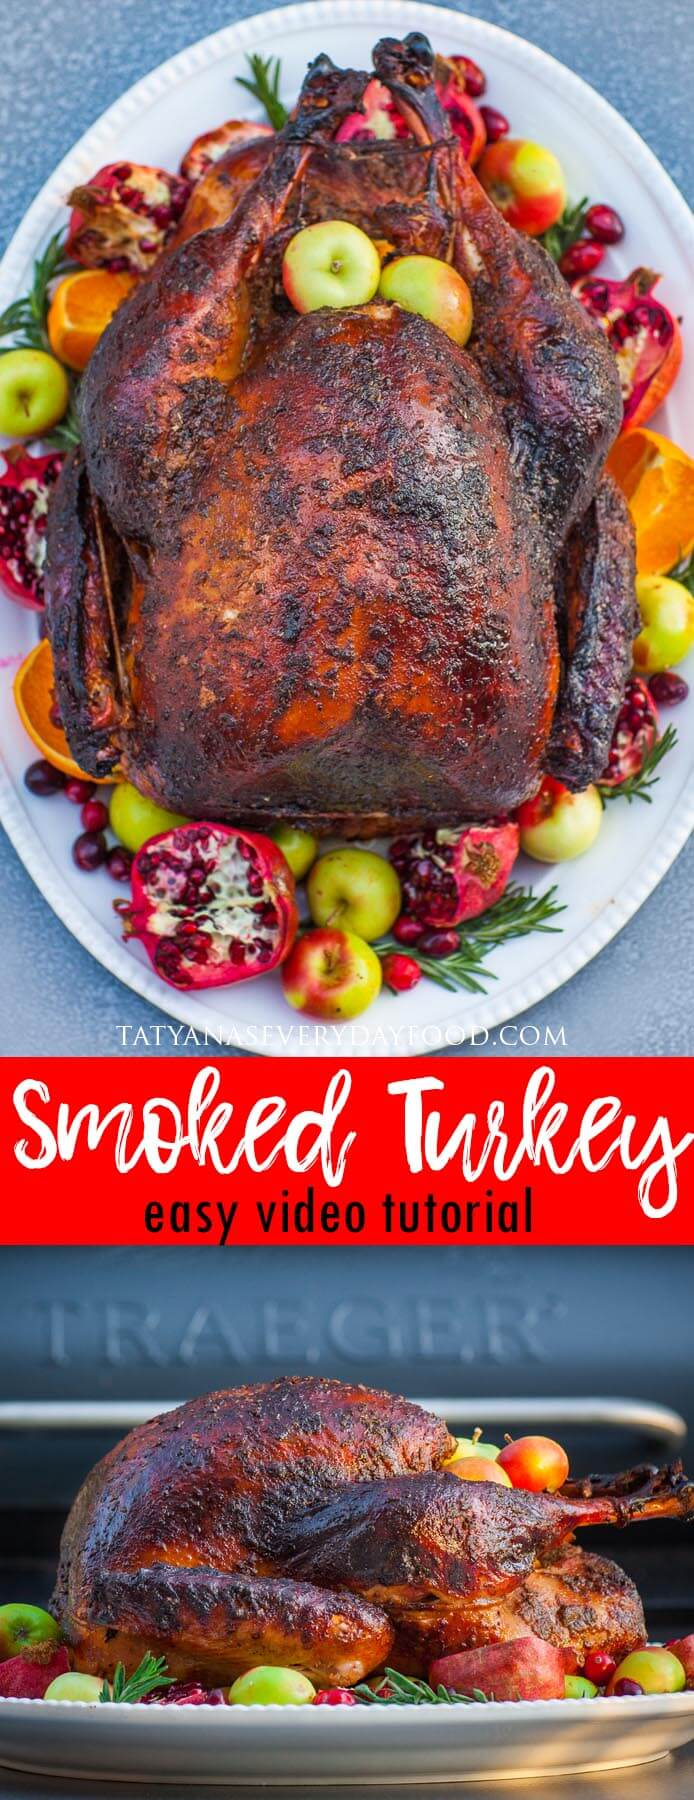 How to Smoke a Turkey Video Tutorial